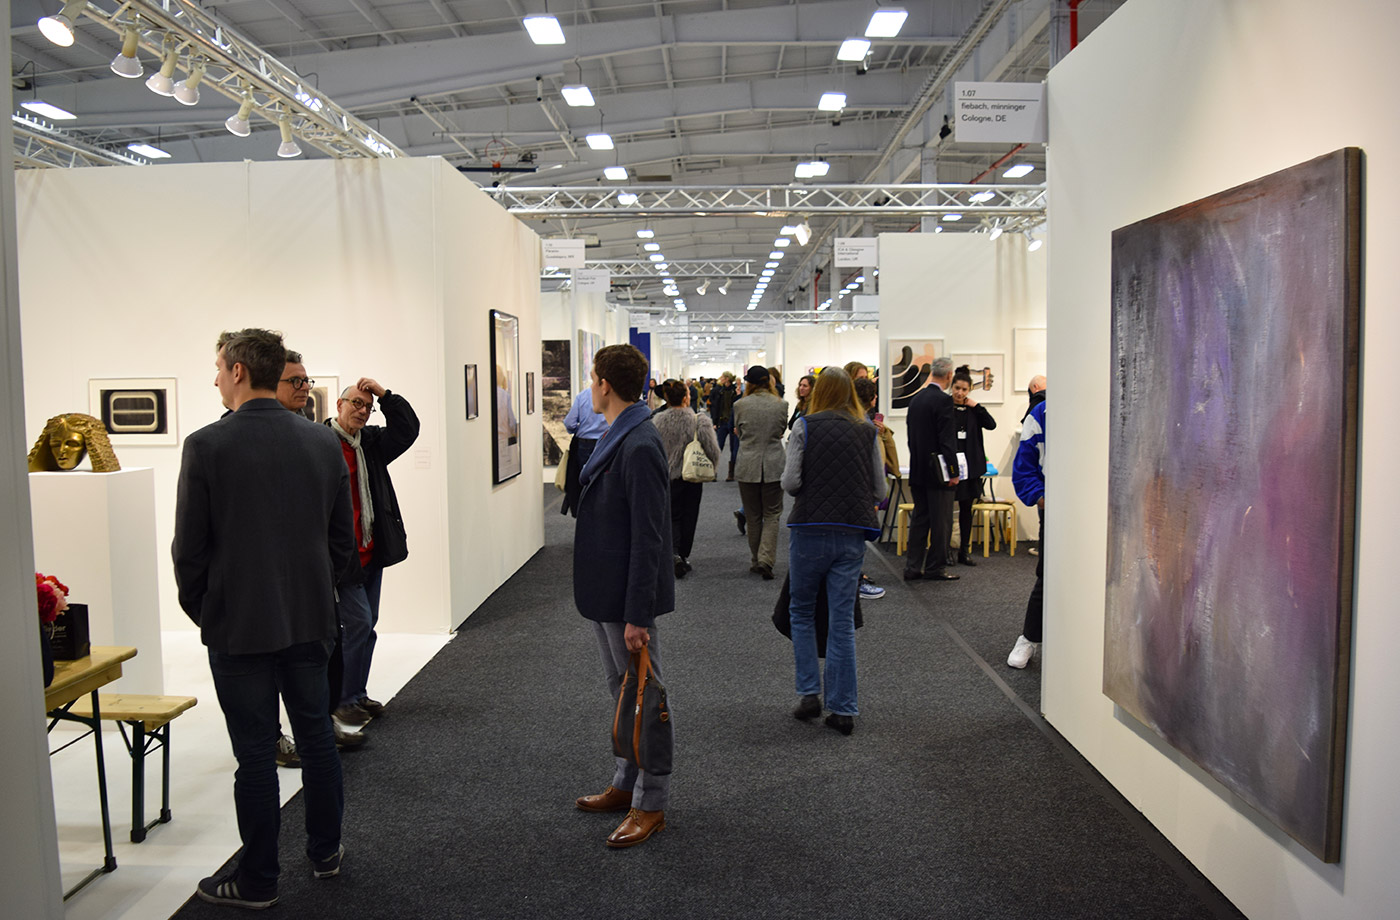 Visitors at NADA New York 2016 (all photos by the author for Hyperallergic)